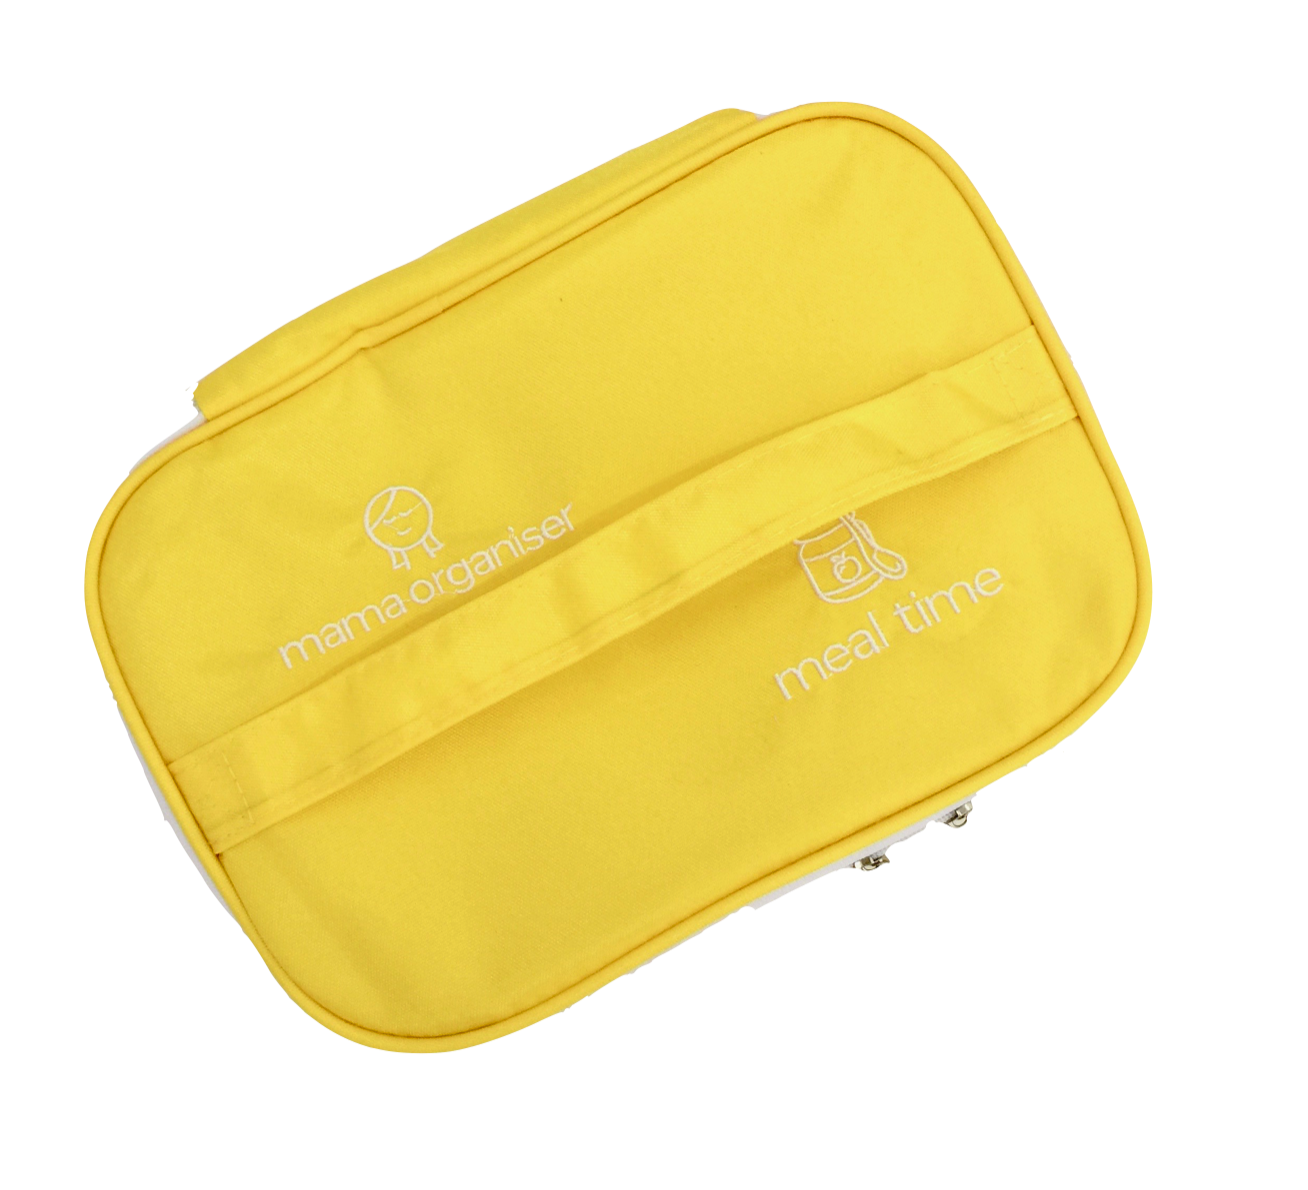 Meal Time Pouch - Meal Time Pouch: Yellow water-resistant nylon on all sides. A foldable box-shaped bag for snacks and meals. Includes elastic bands and mesh pockets for cutlery, bibs, wipes and extras. Malleability of the pouch allows for bottles, bowls or Mama O's dispenser spoons and yum tubes to fit inside and for it to take up minimal room when empty.